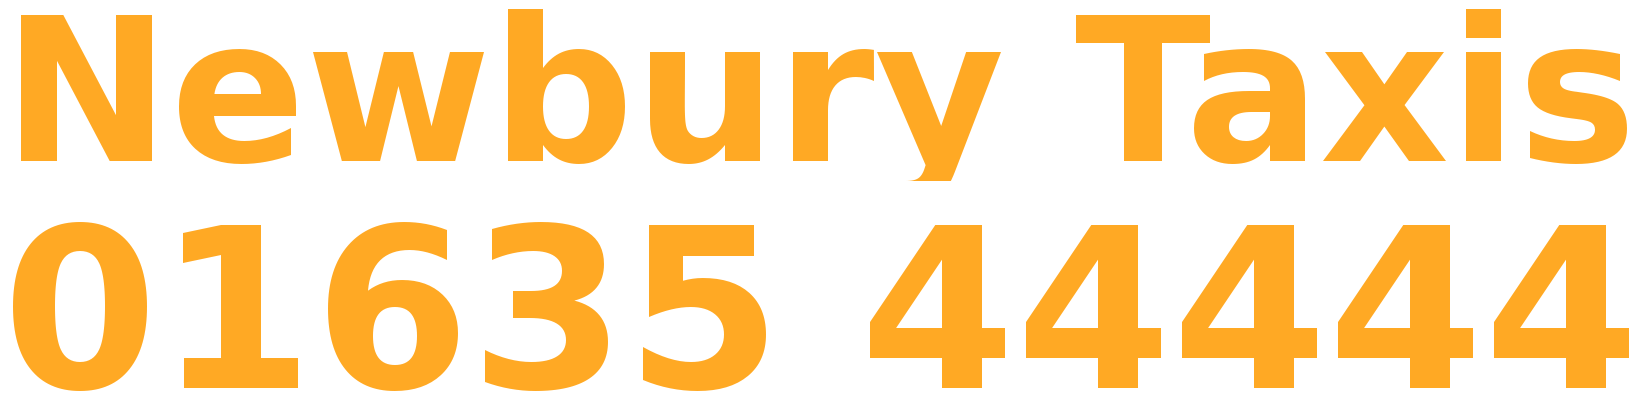 Newbury Taxi Booking and Quotes